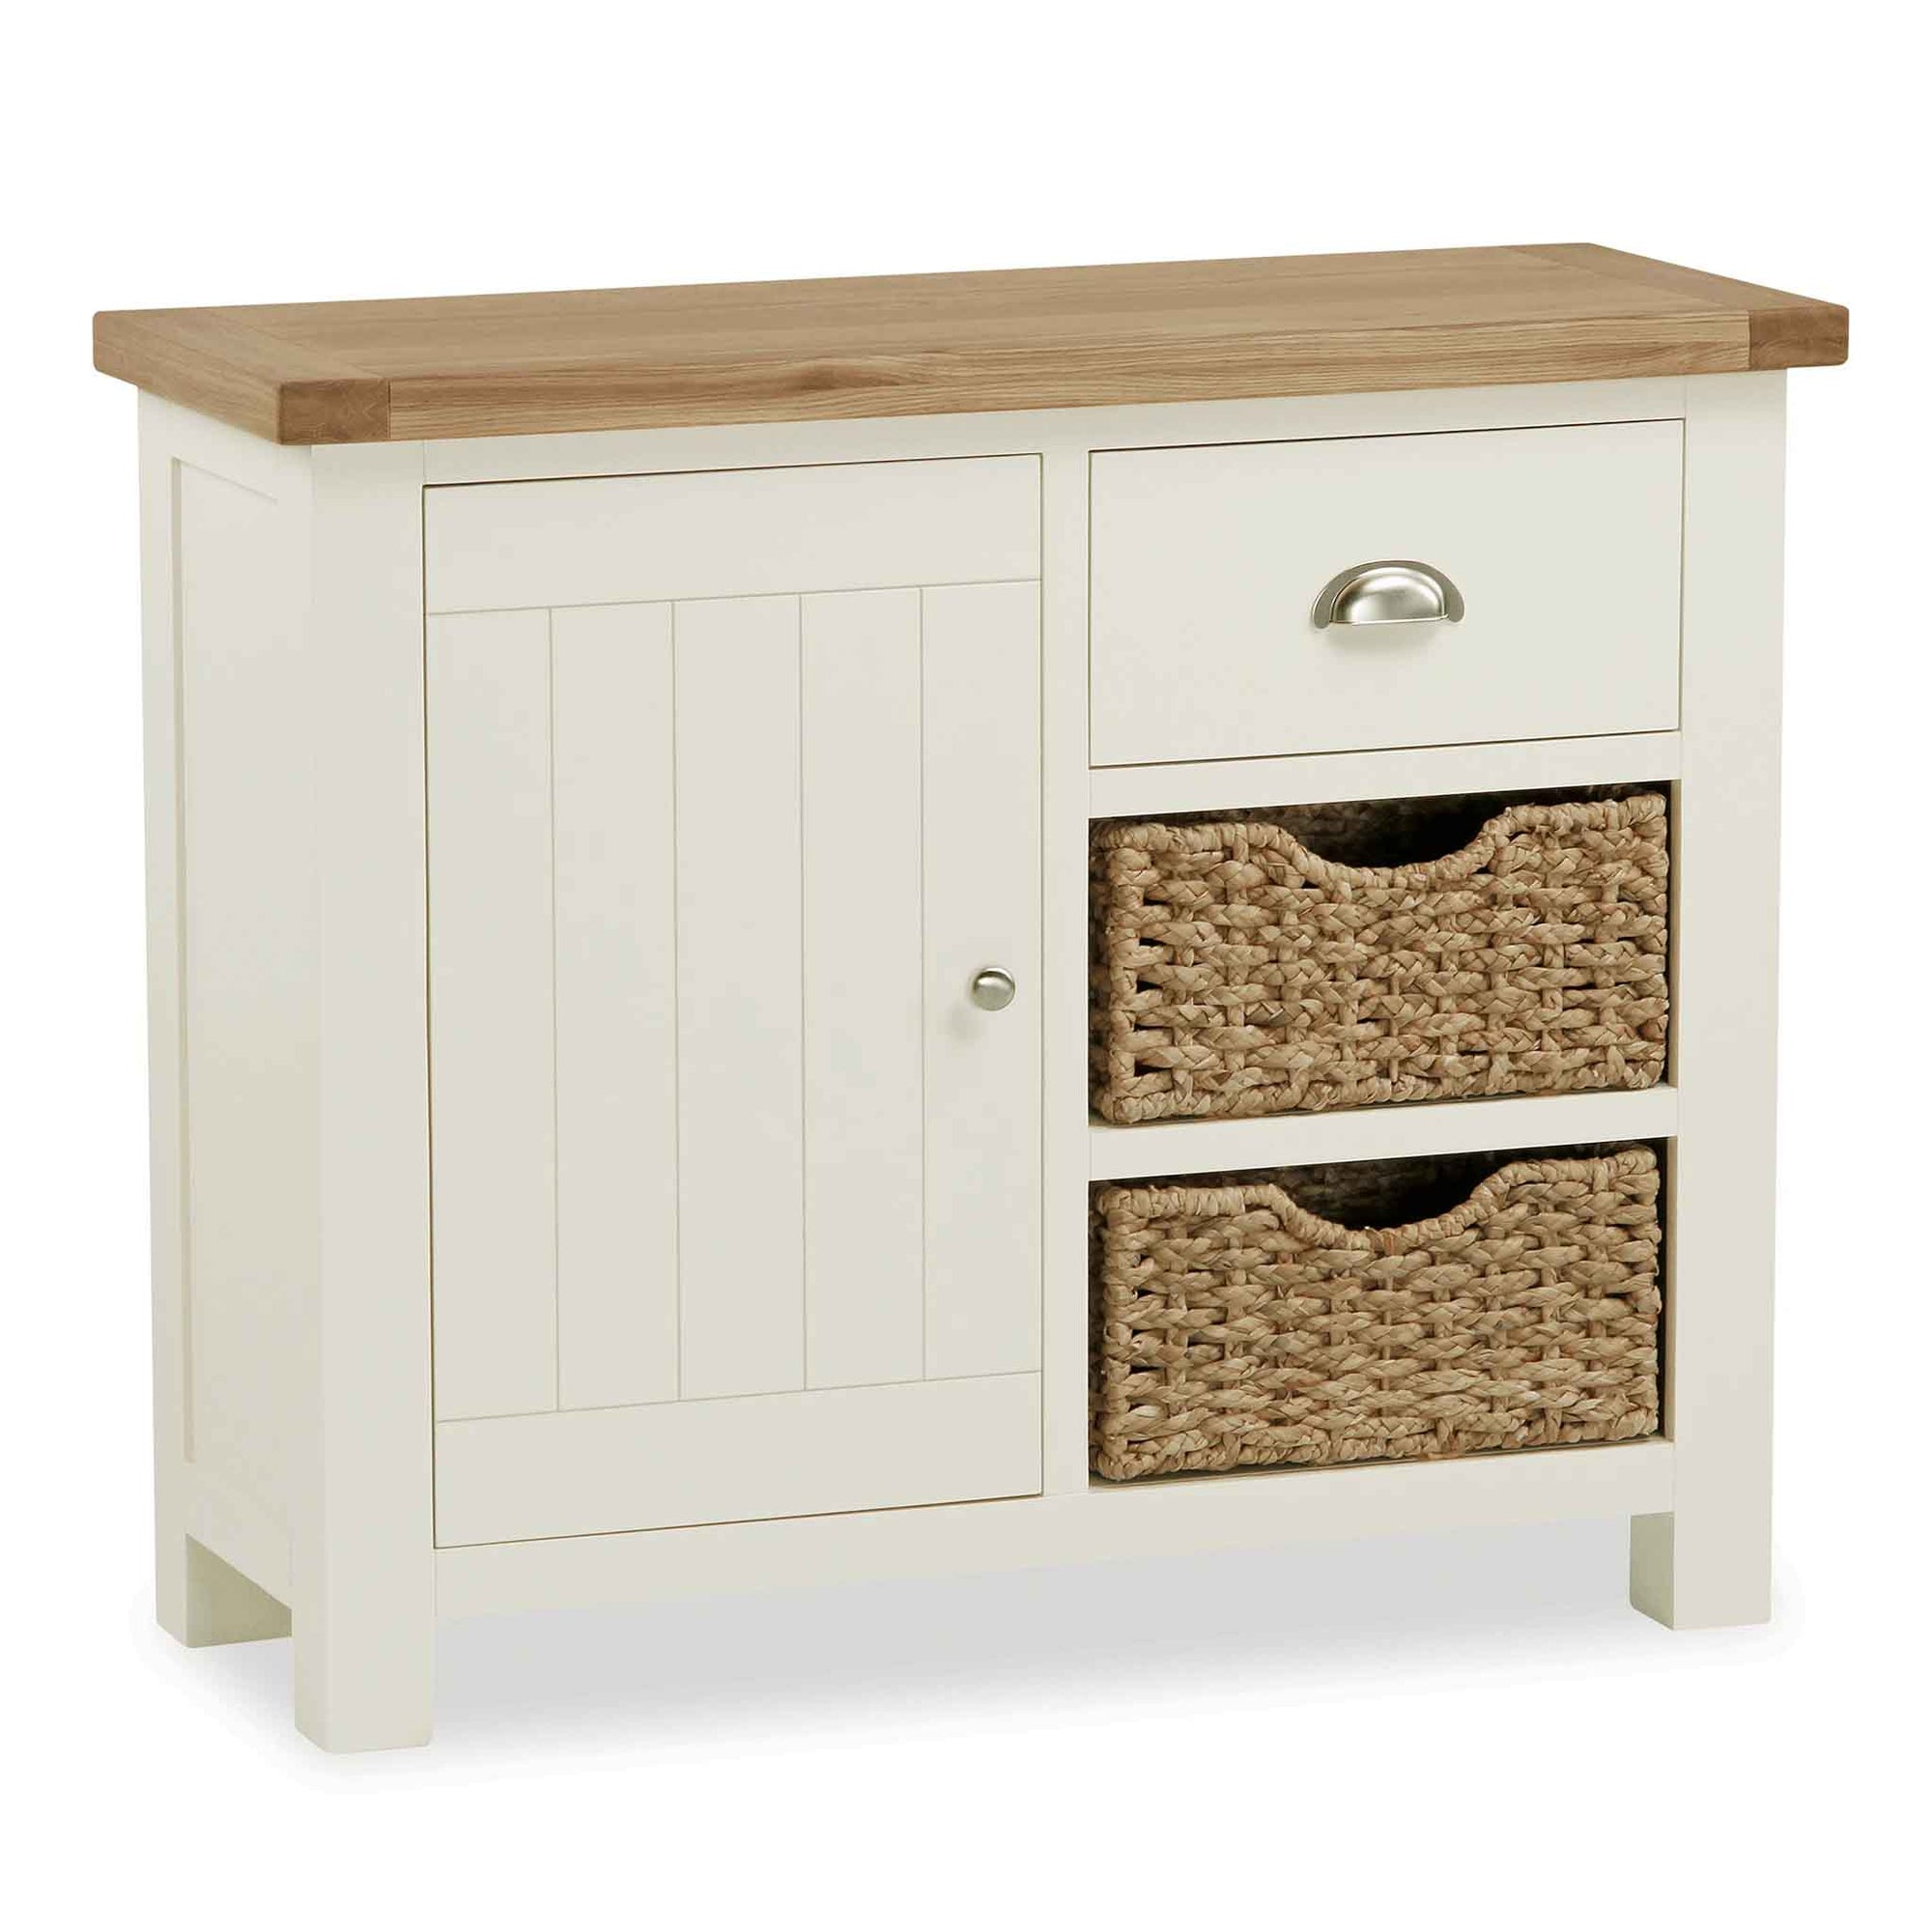 Picture of: Daymer Cream Painted Small Sideboard With Baskets Roseland Furniture